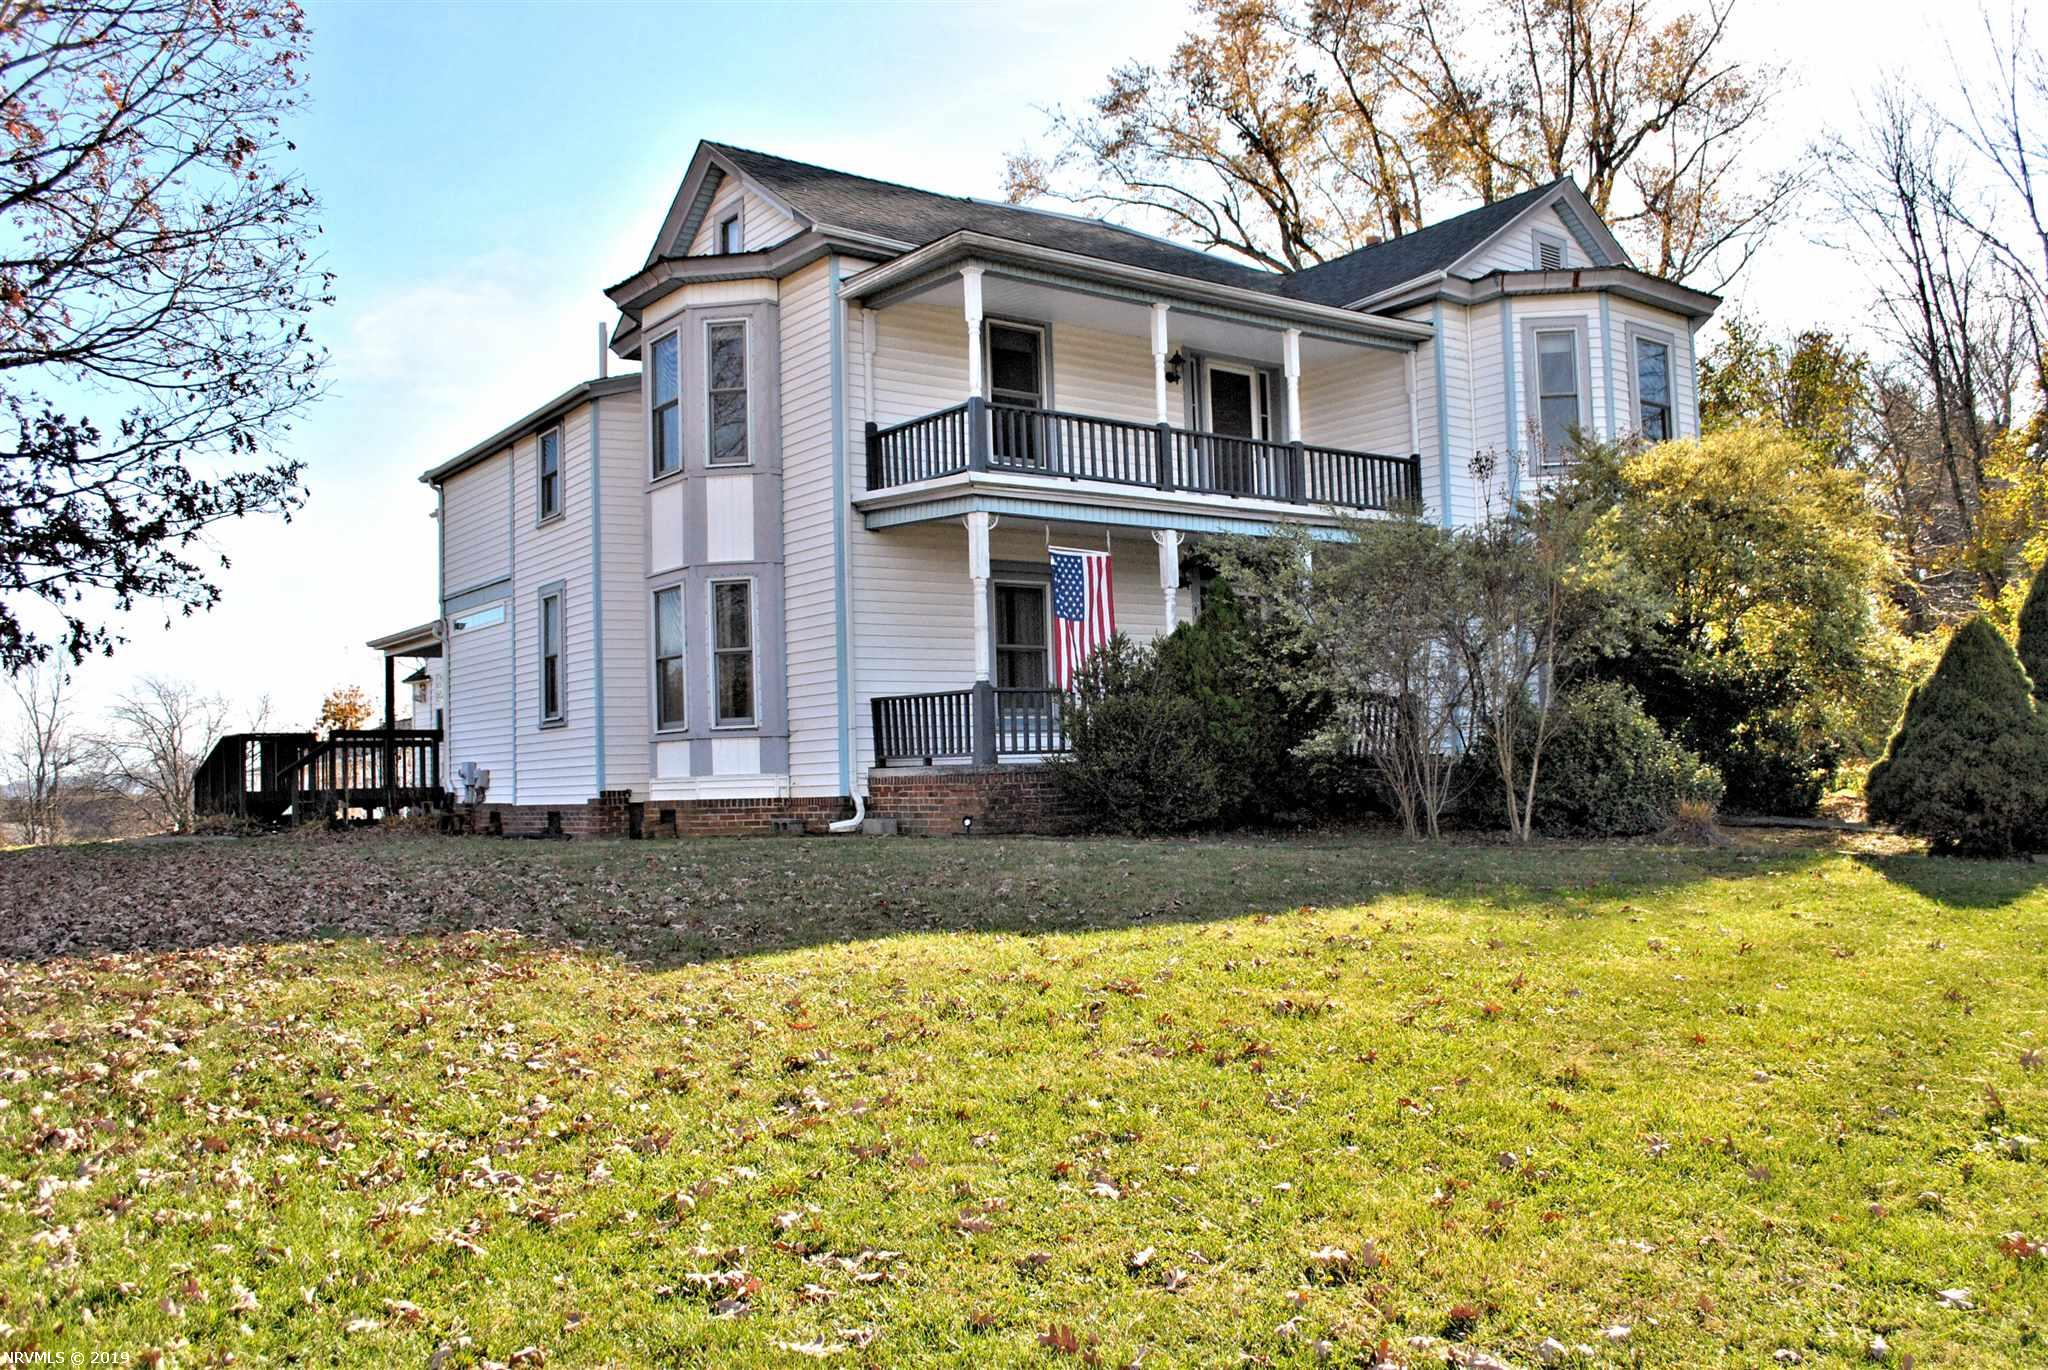 A magnificent home built to last with up to five bedrooms, three full and two half baths and a fourth full bathroom in the four car garage all on 2.74 acres. Choose between the MBR on the main level or upstairs, both with bay windows. Enjoy your morning on the sunporch which leads to a deck and hot tub and serve dinners in the formal dining room complete with a wet bar. Set up your Christmas tree in the bay window of the front living room with a gas log FP framed in by a gorgeous mantel and the grand staircase will take you to a large hallway leading to the balcony with long range views of Walker Mountain in Giles Co. Two of the upstairs BRs share a Jack & Jill BA with corner shower and there are rooms for storage, an office and den with a second staircase leading back down to the kitchen. The heated garage has a finished area which includes a full bathroom that has the potential to become a small apartment. This home has been lovingly updated through the years and awaits new memories.